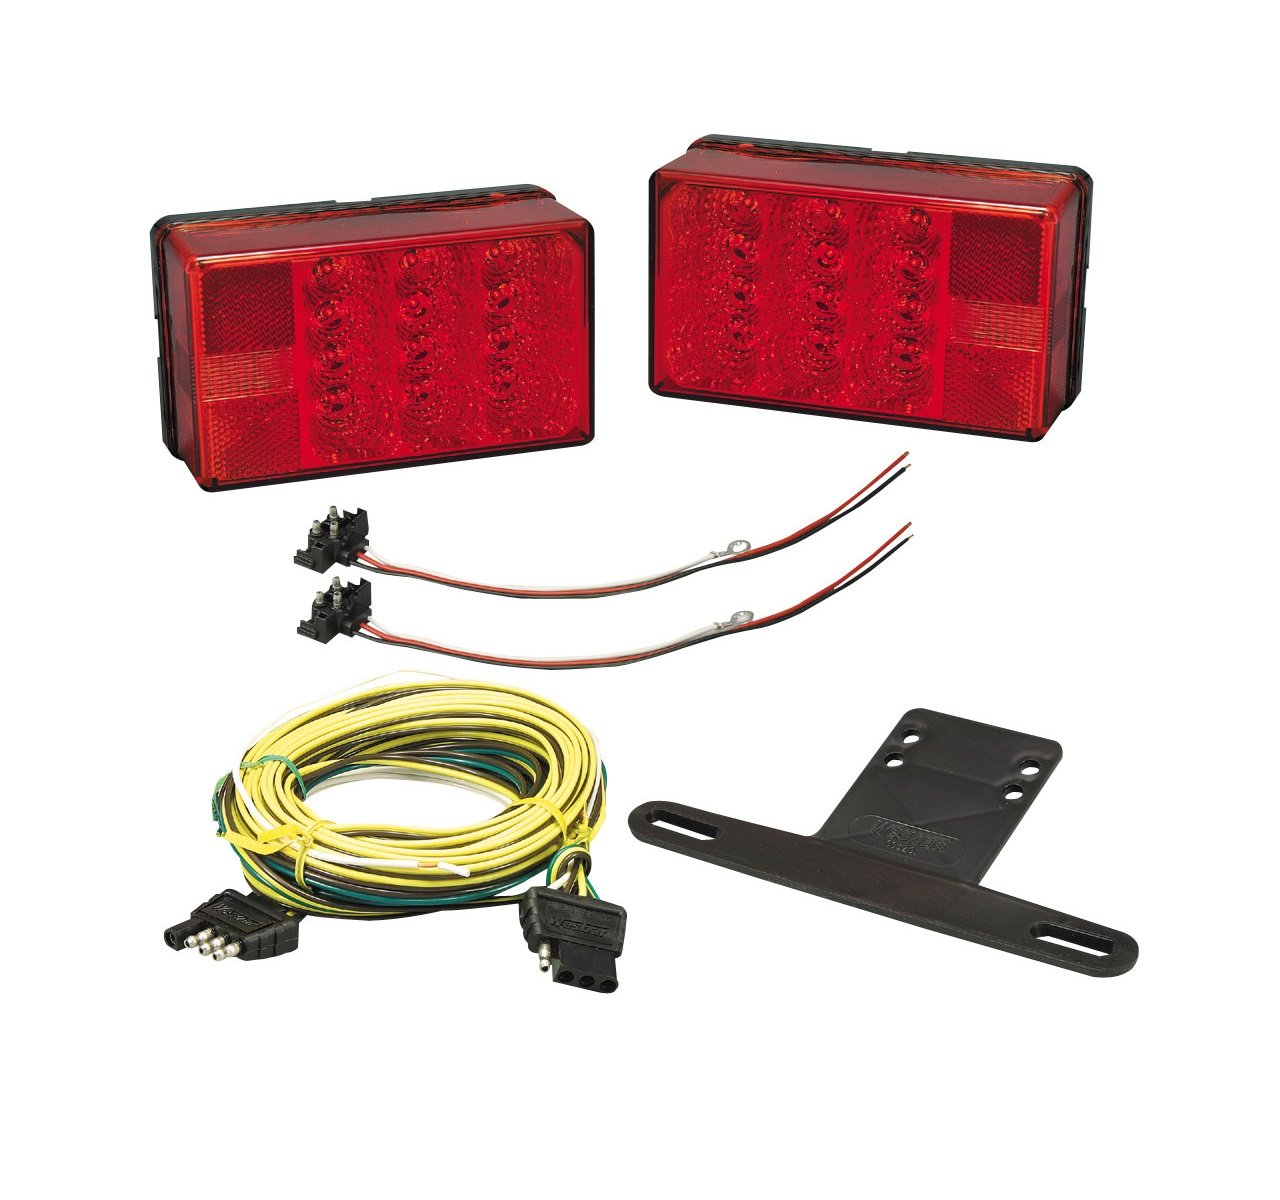 Bargman 31 407560 Trailer Light Kit Waterproof 4x6 Low Wiring Harness Profile Led With Vehicle Harnesses Automotive